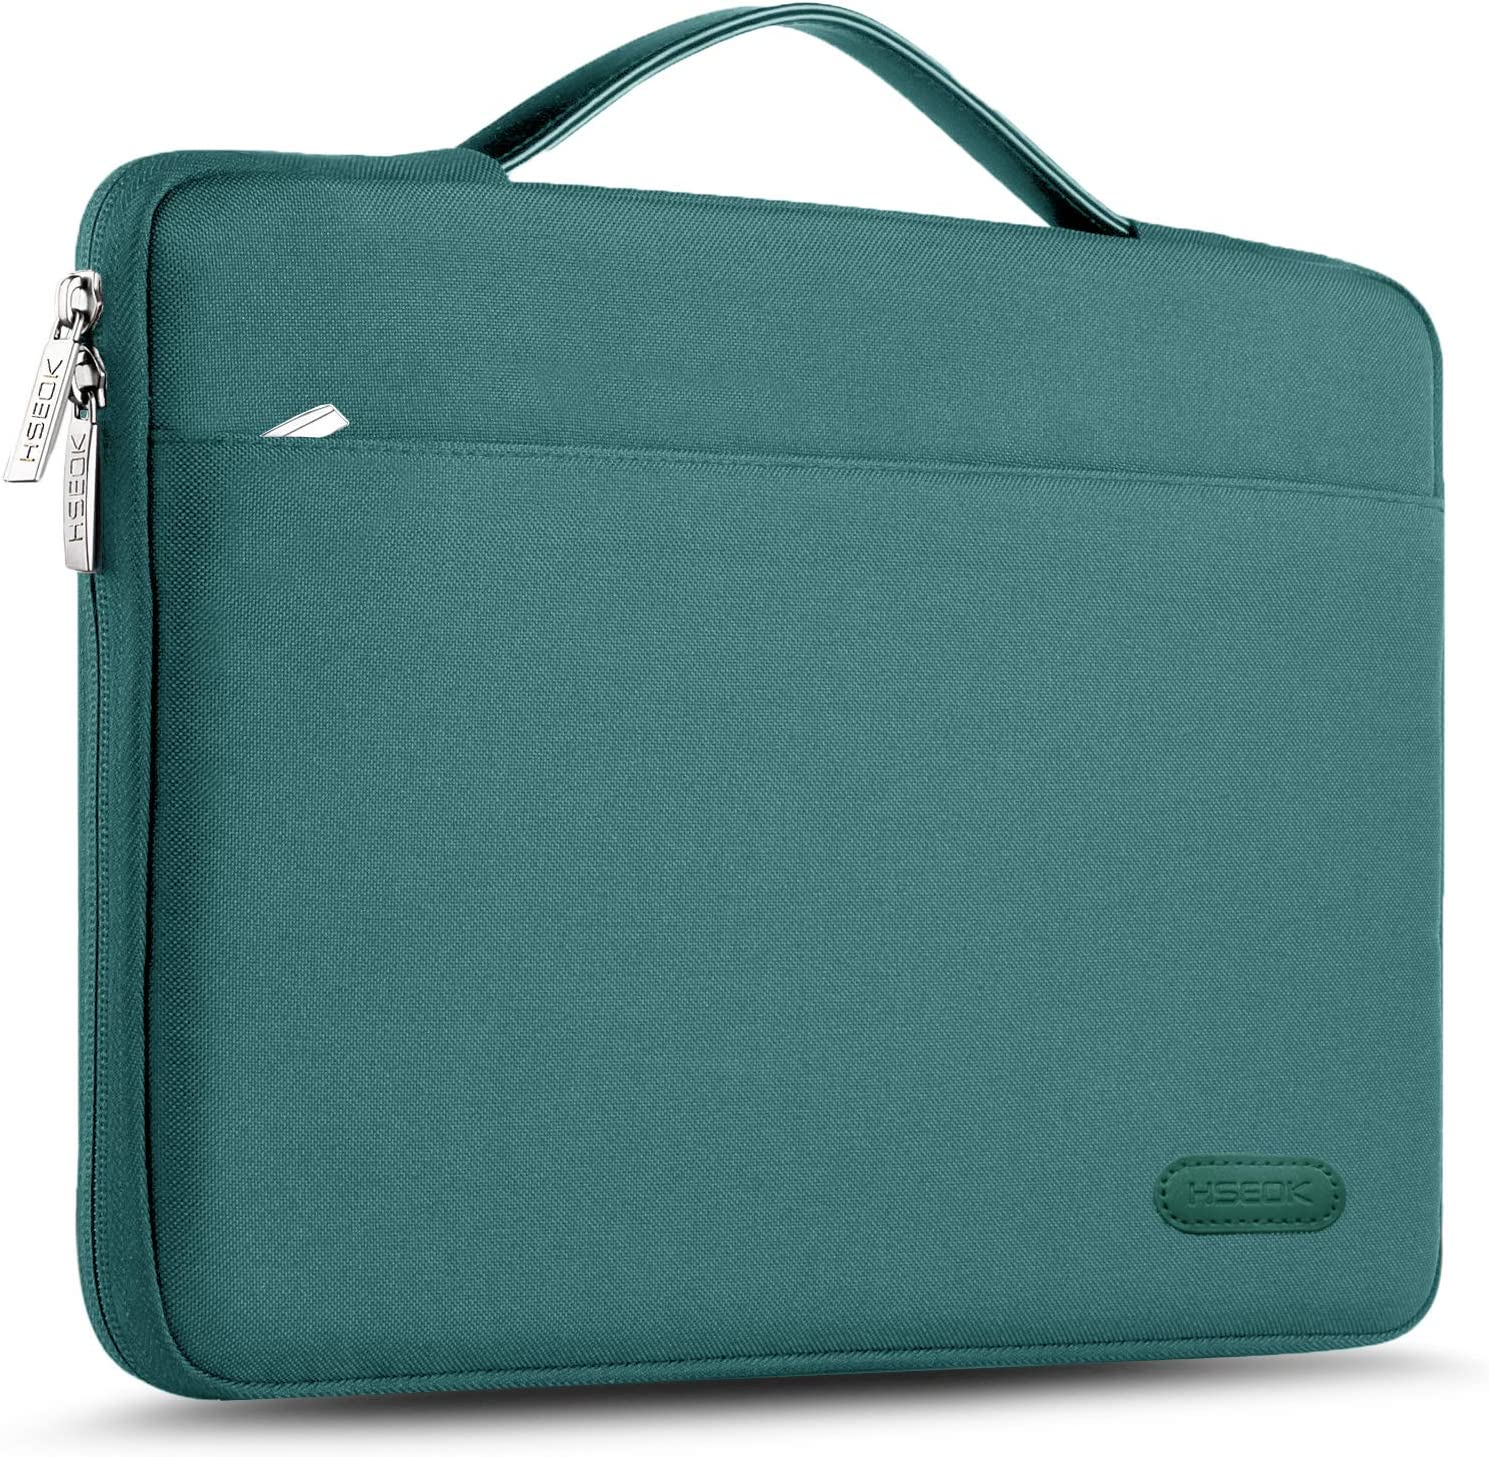 """Hseok Laptop Sleeve 13-13.5 Inch Case Briefcase, Compatible All Model of 13.3 Inch MacBook Air/Pro, XPS 13, Surface Book 13.5"""" Spill-Resistant Handbag for Most Popular 13""""-13.5"""" Notebooks, Dark Green"""